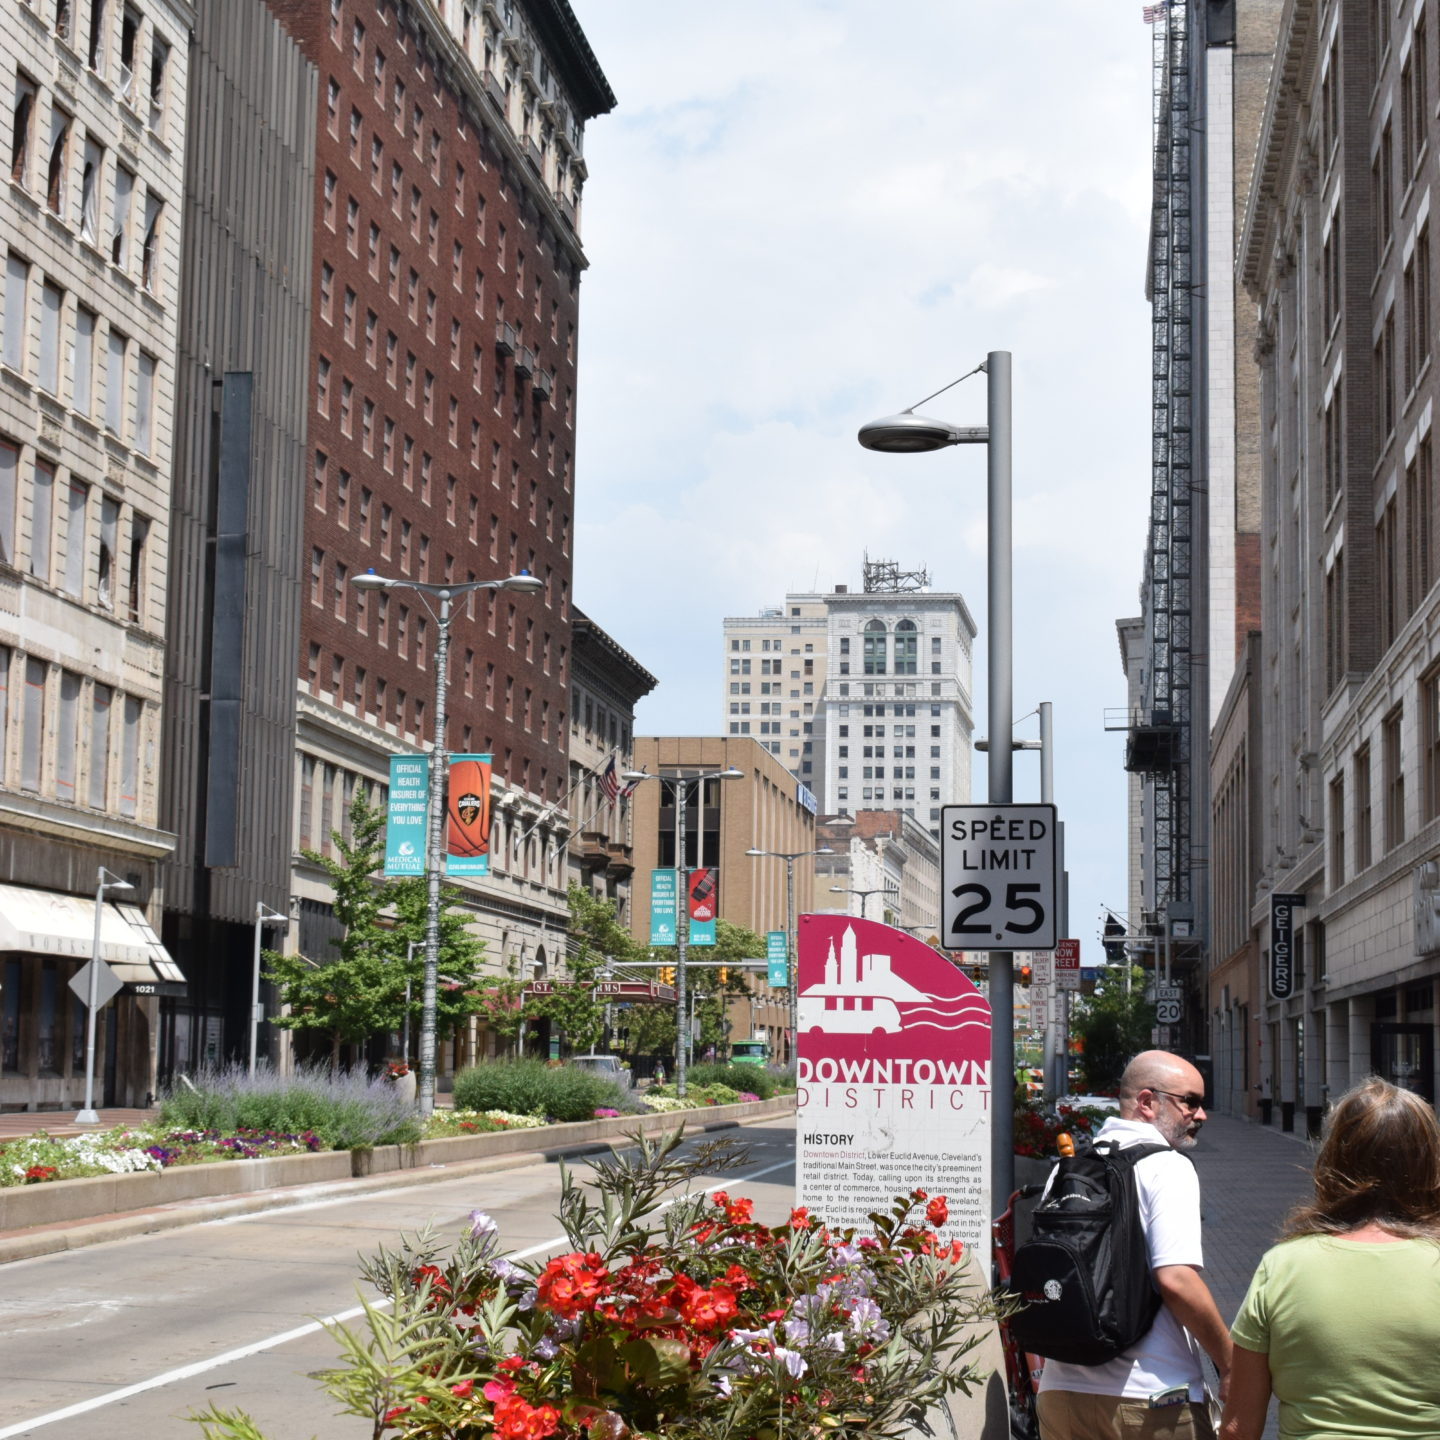 Tours of Cleveland